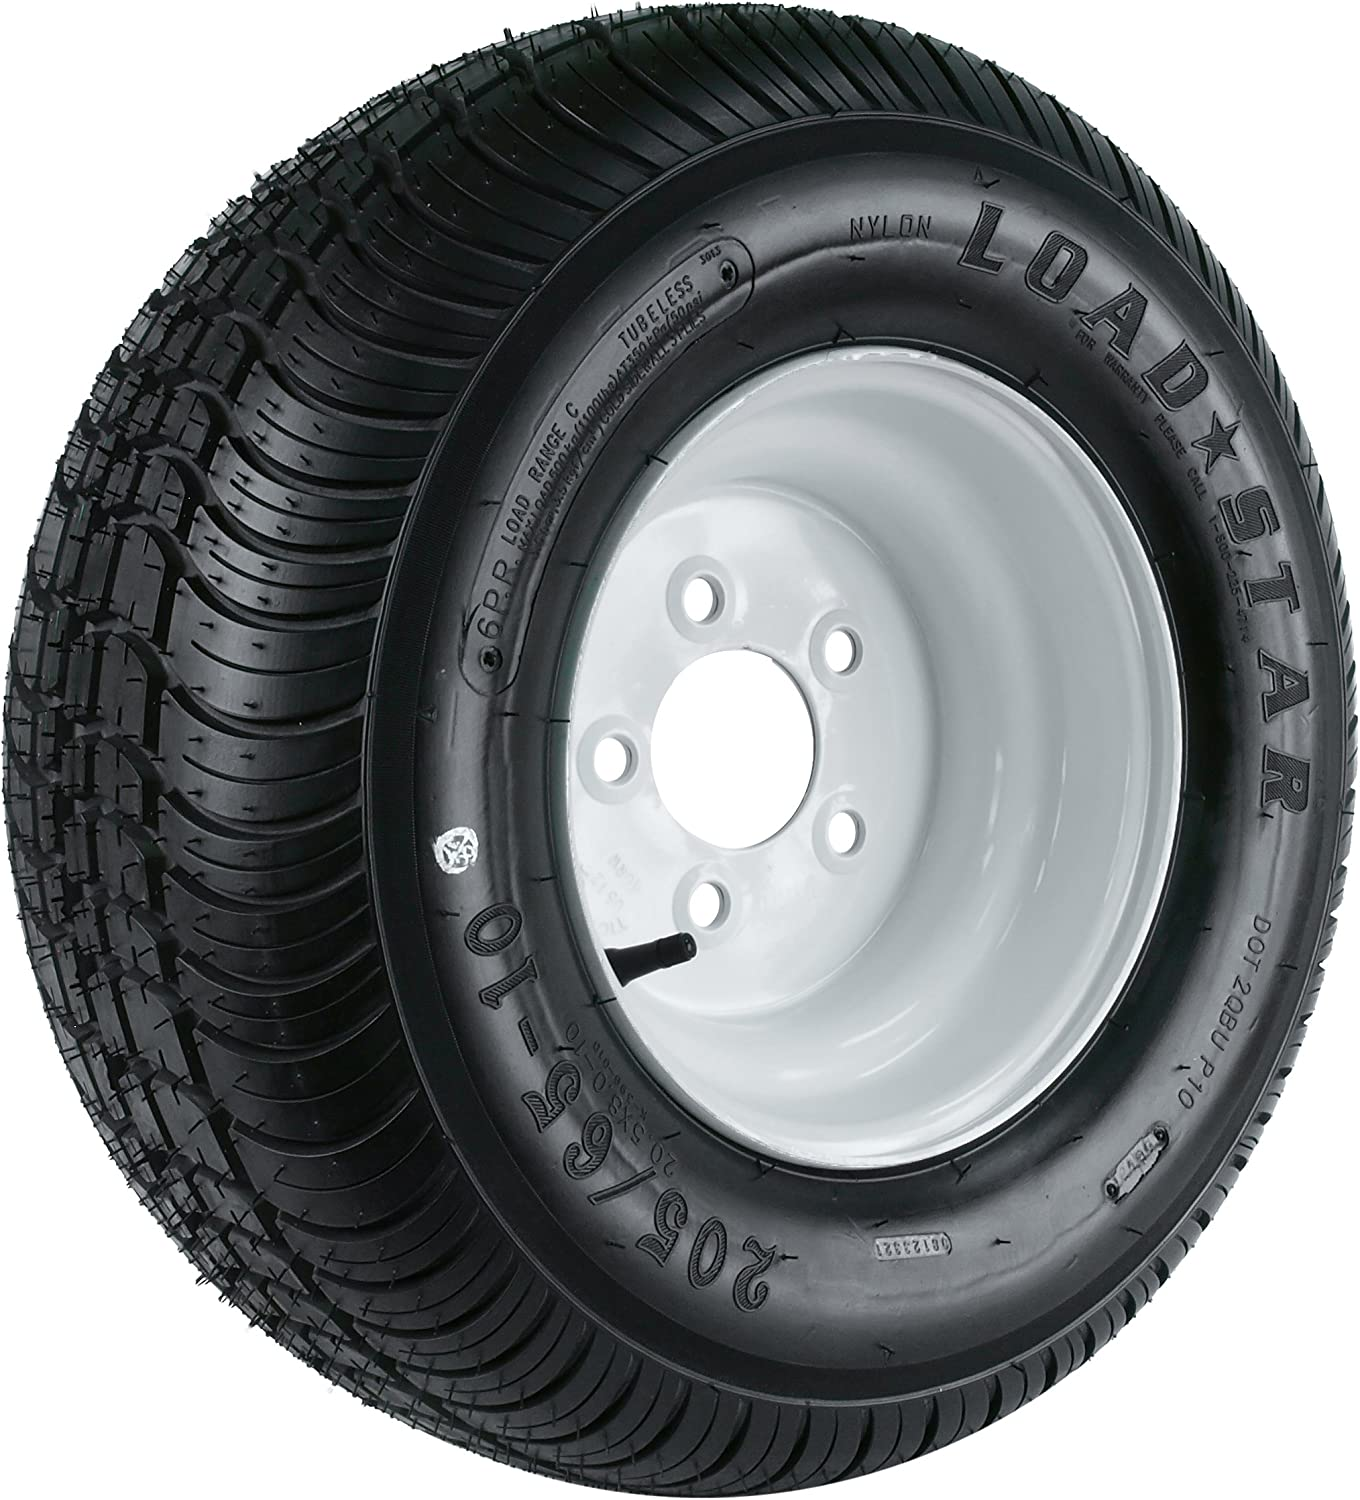 "Kenda Loadstar (10x6""/5x4.5"") Wheel with White Powder-Coat Pinstripe Finish LRC and Trailer Tire Assembly (205/65-10)"